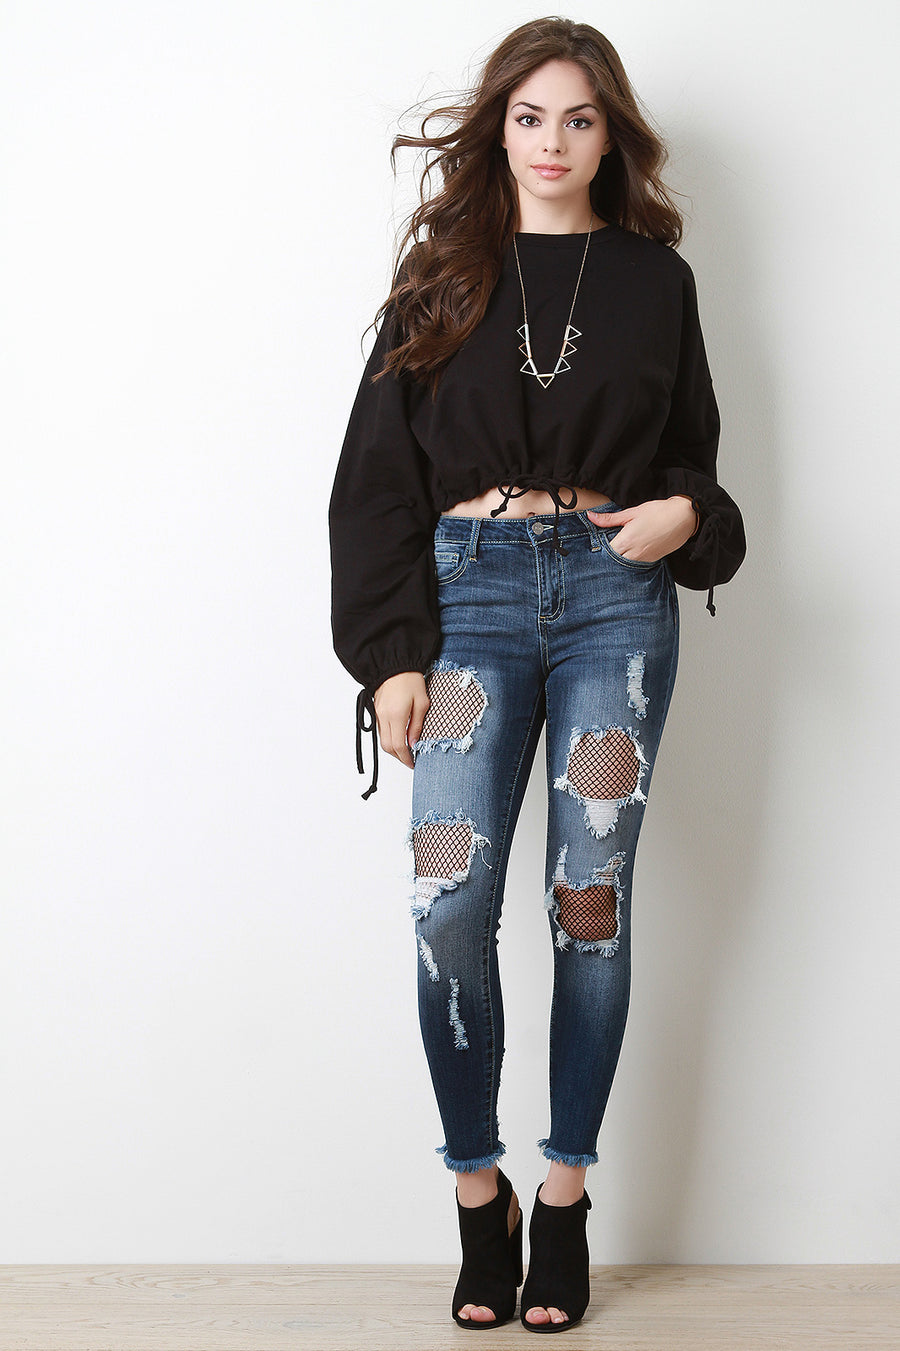 Diamond Fishnet Cutout Denim Jeans